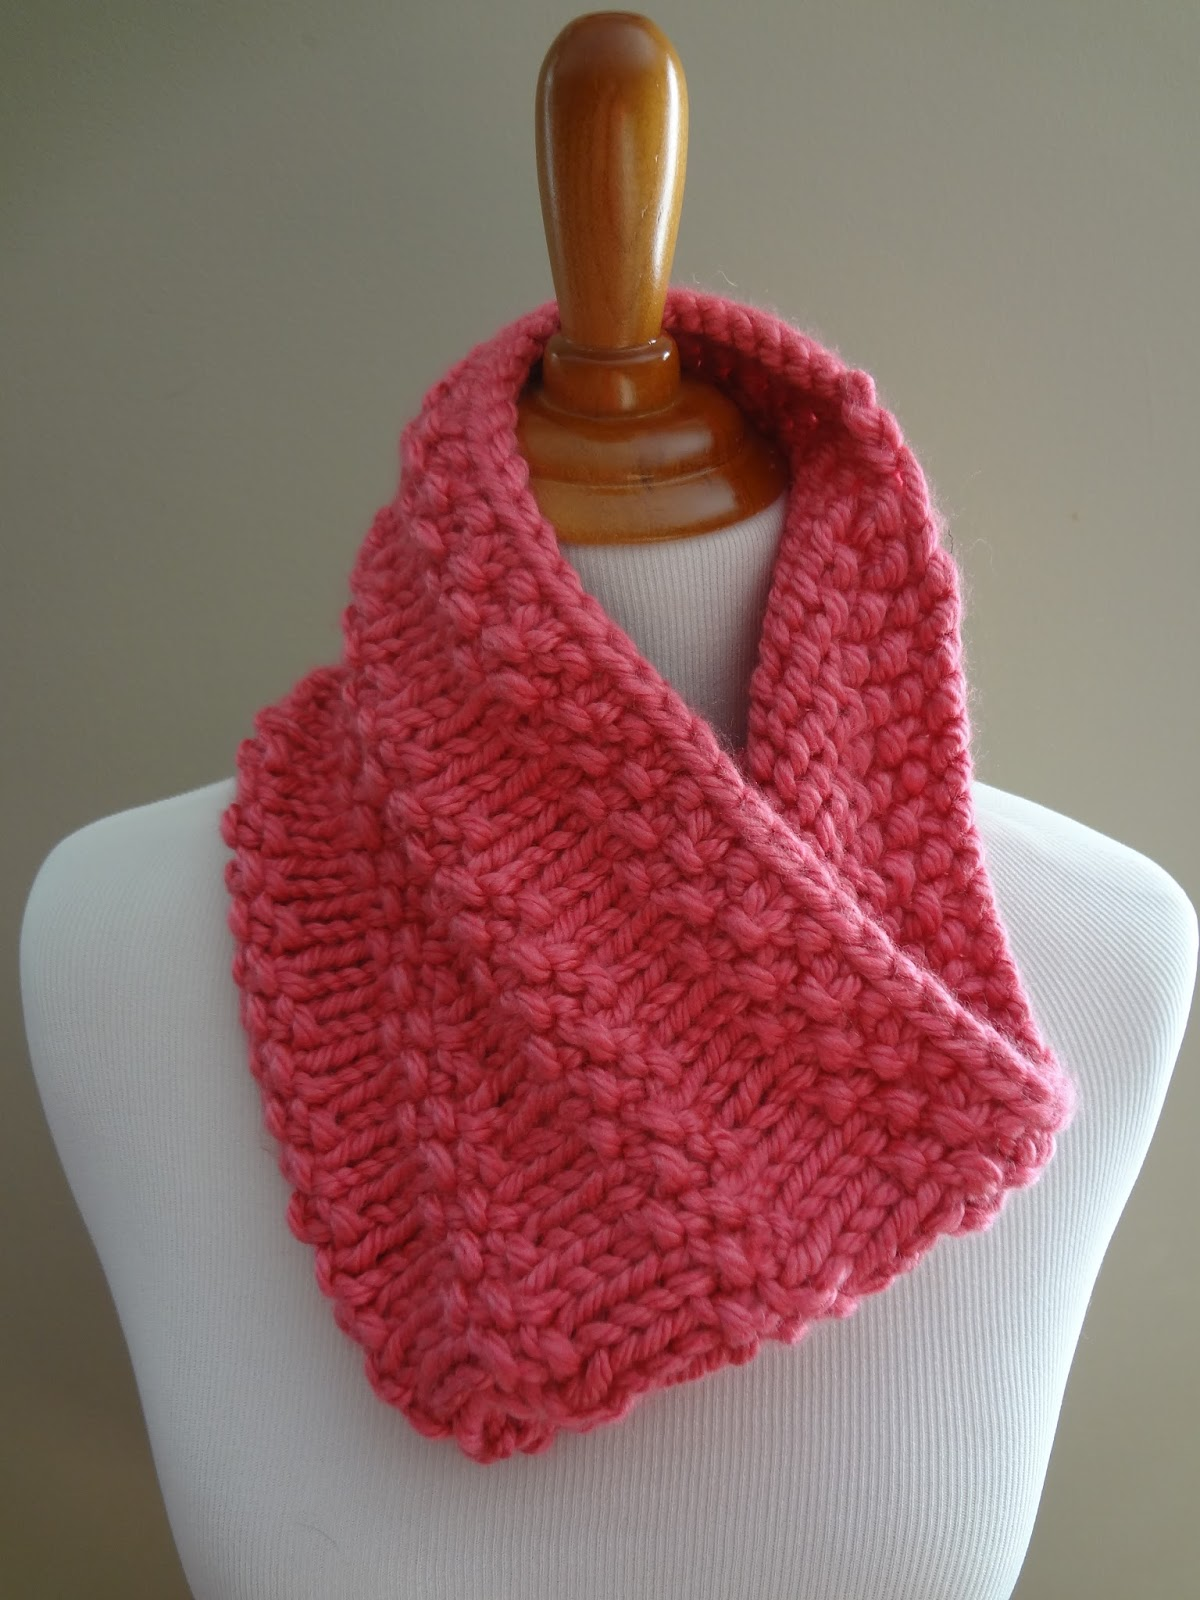 Free Cowl Knitting Patterns For Beginners : Fiber Flux: Free Knitting Pattern...Bubblegum Cowl!